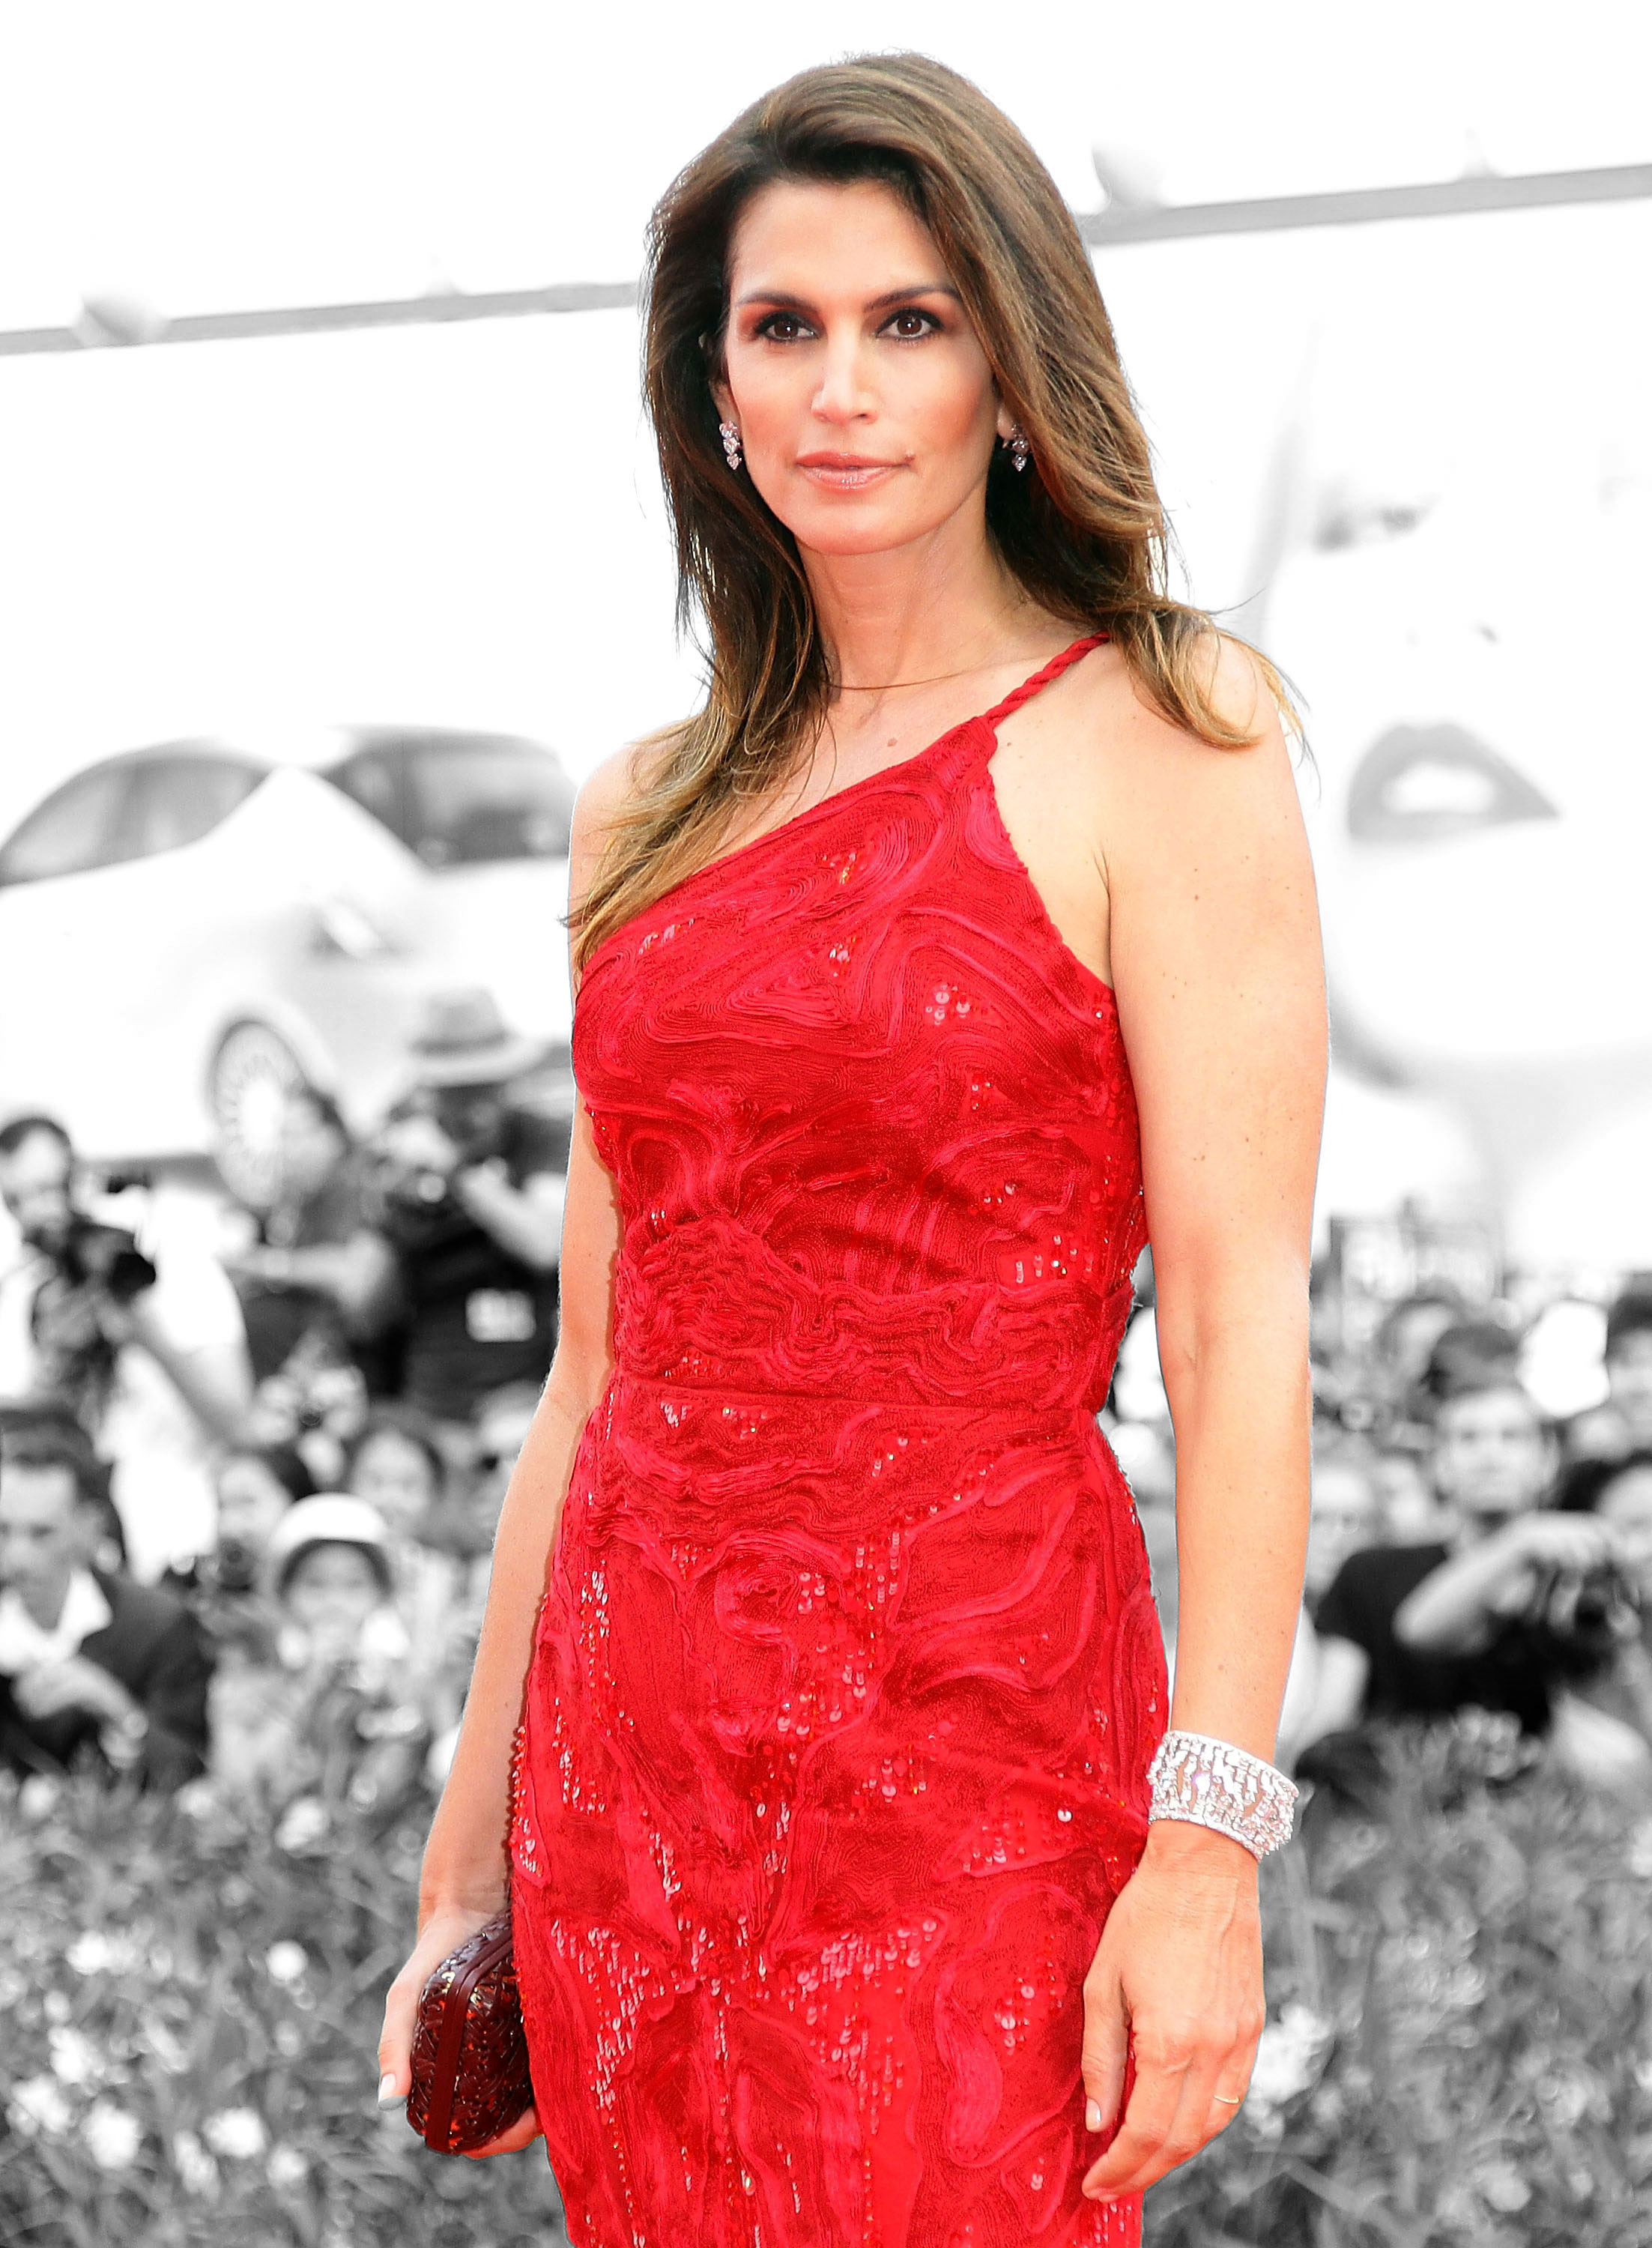 cindy-crawford_cover-fotka_GettyImages-123214625-(1)